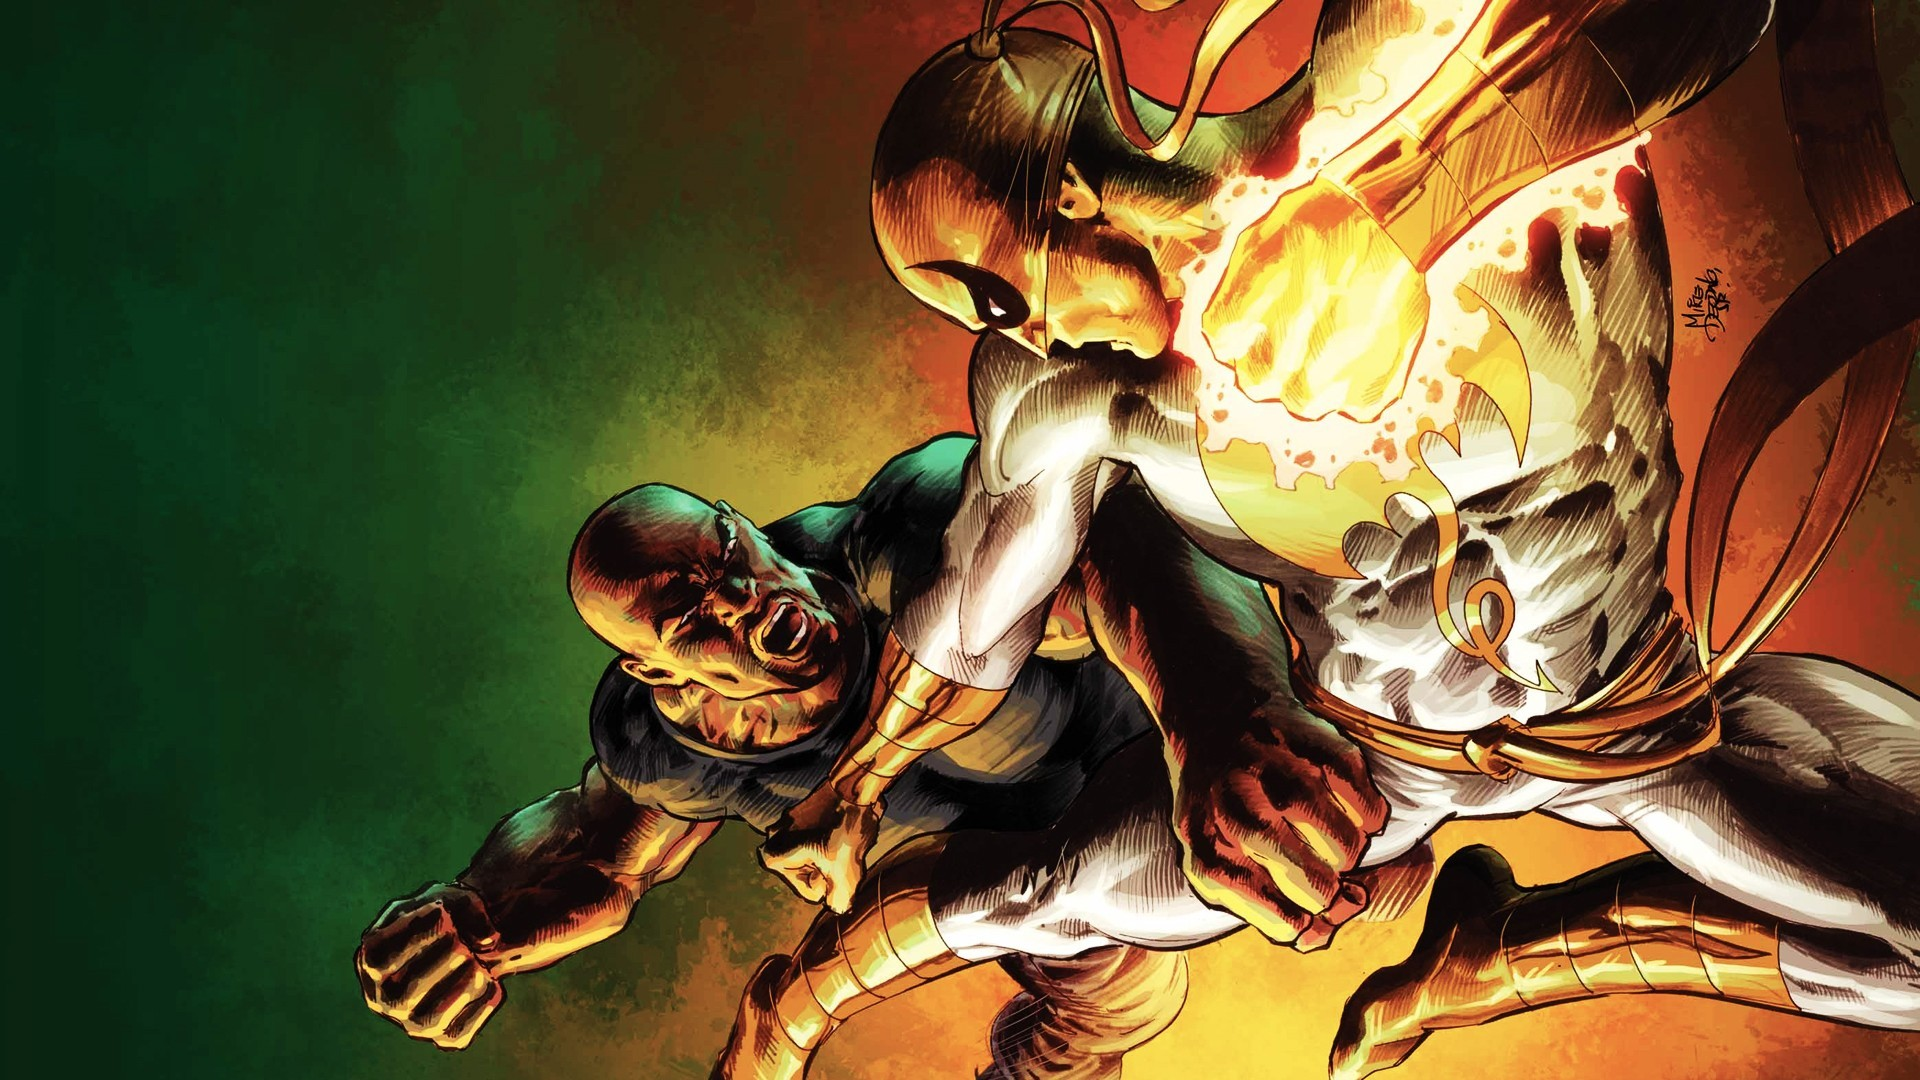 1920x1080 1 Power Man And Iron Fist HD Wallpapers | Backgrounds - Wallpaper Abyss